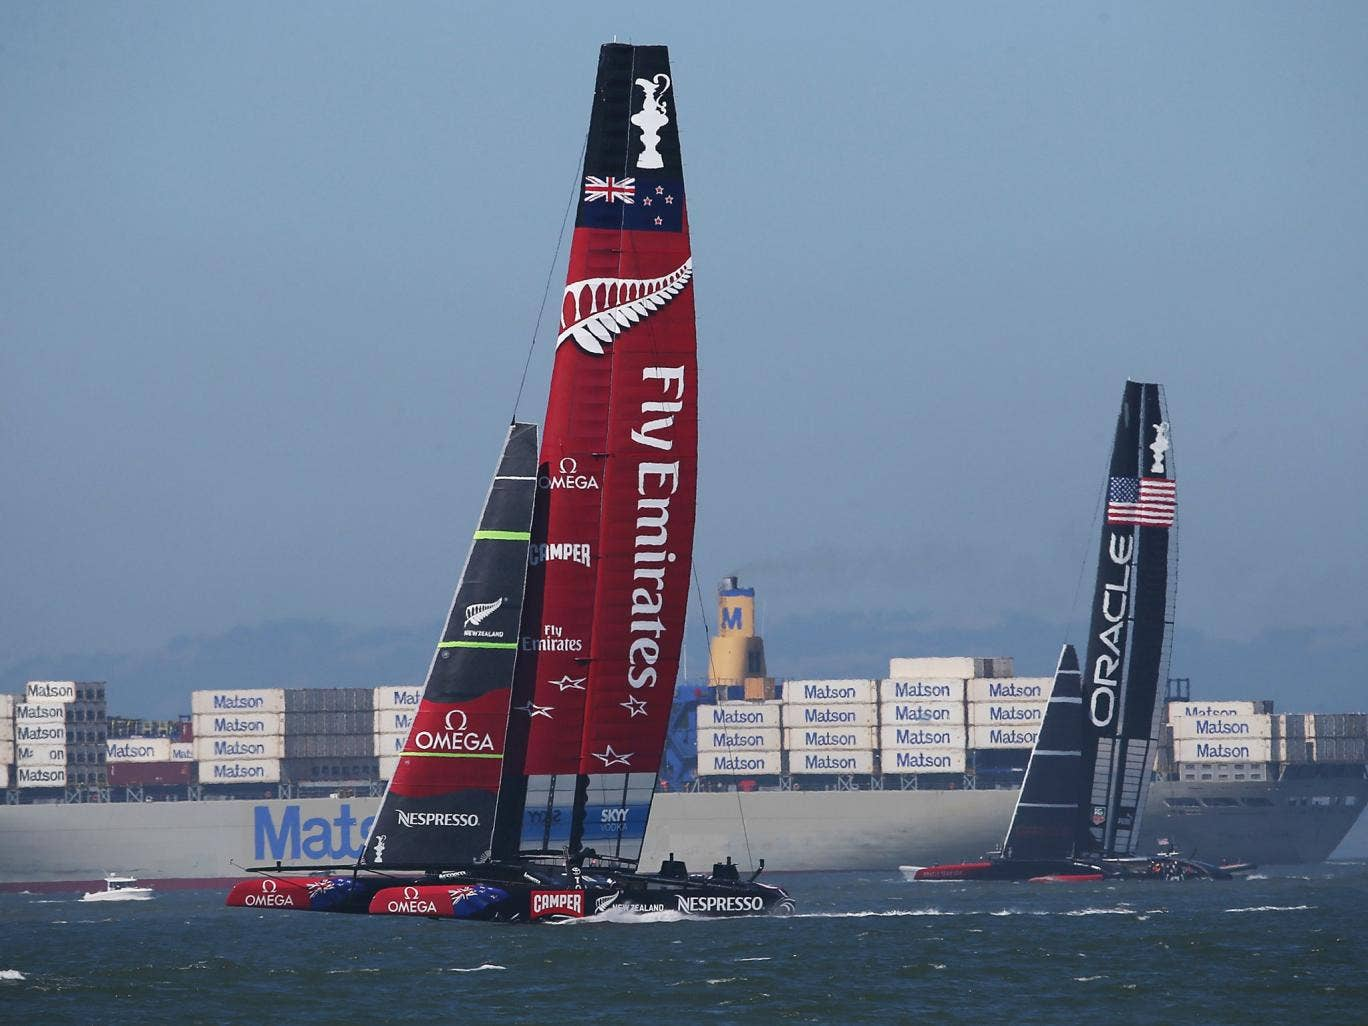 Oracle Team USA skippered James Spithill (R) in action against Emirates Team New Zealand skippered Dean Barker (L) during race twelve of the America's Cup finals